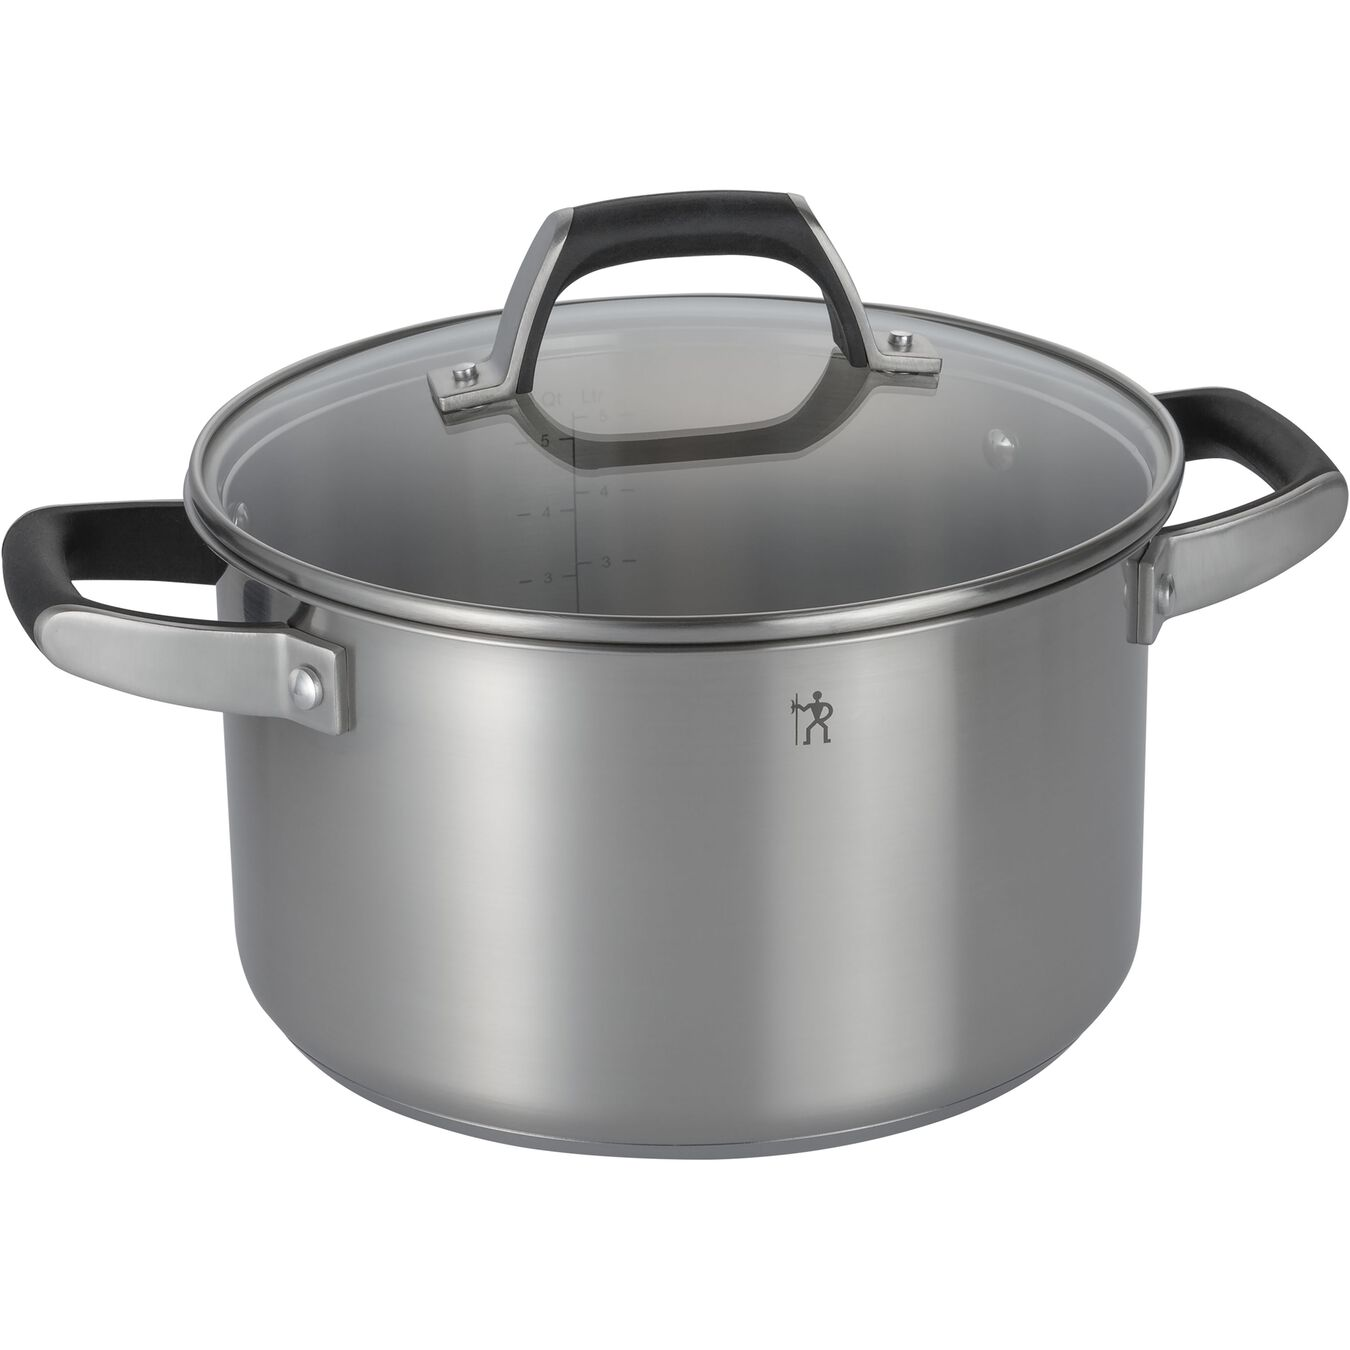 6 l 18/10 Stainless Steel Stock pot,,large 1